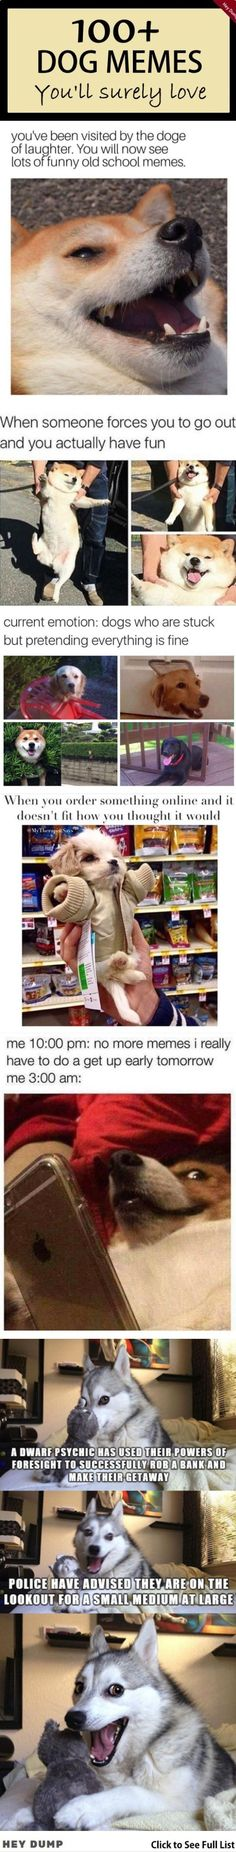 100+ DOG Memes That Are Too Funny To Handle #funny #funnymemes #dog #animals #haha #cute #sarcasm #lol #rofl #humor Old Memes, Funny Memes, Hilarious, Fresh Memes, To Loose, Sarcasm, Haha, Handle, Humor